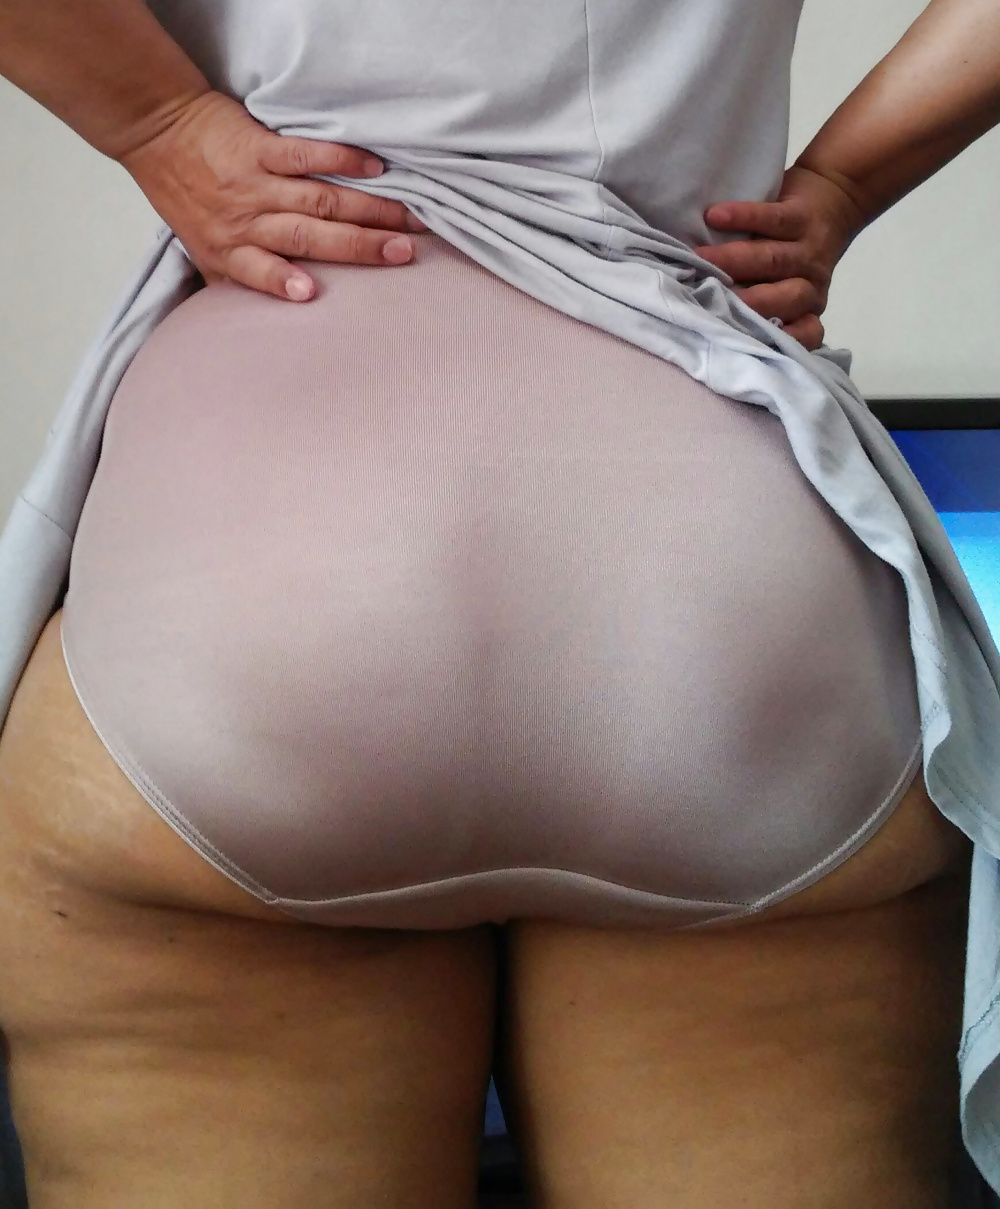 Show me your ass in knickers